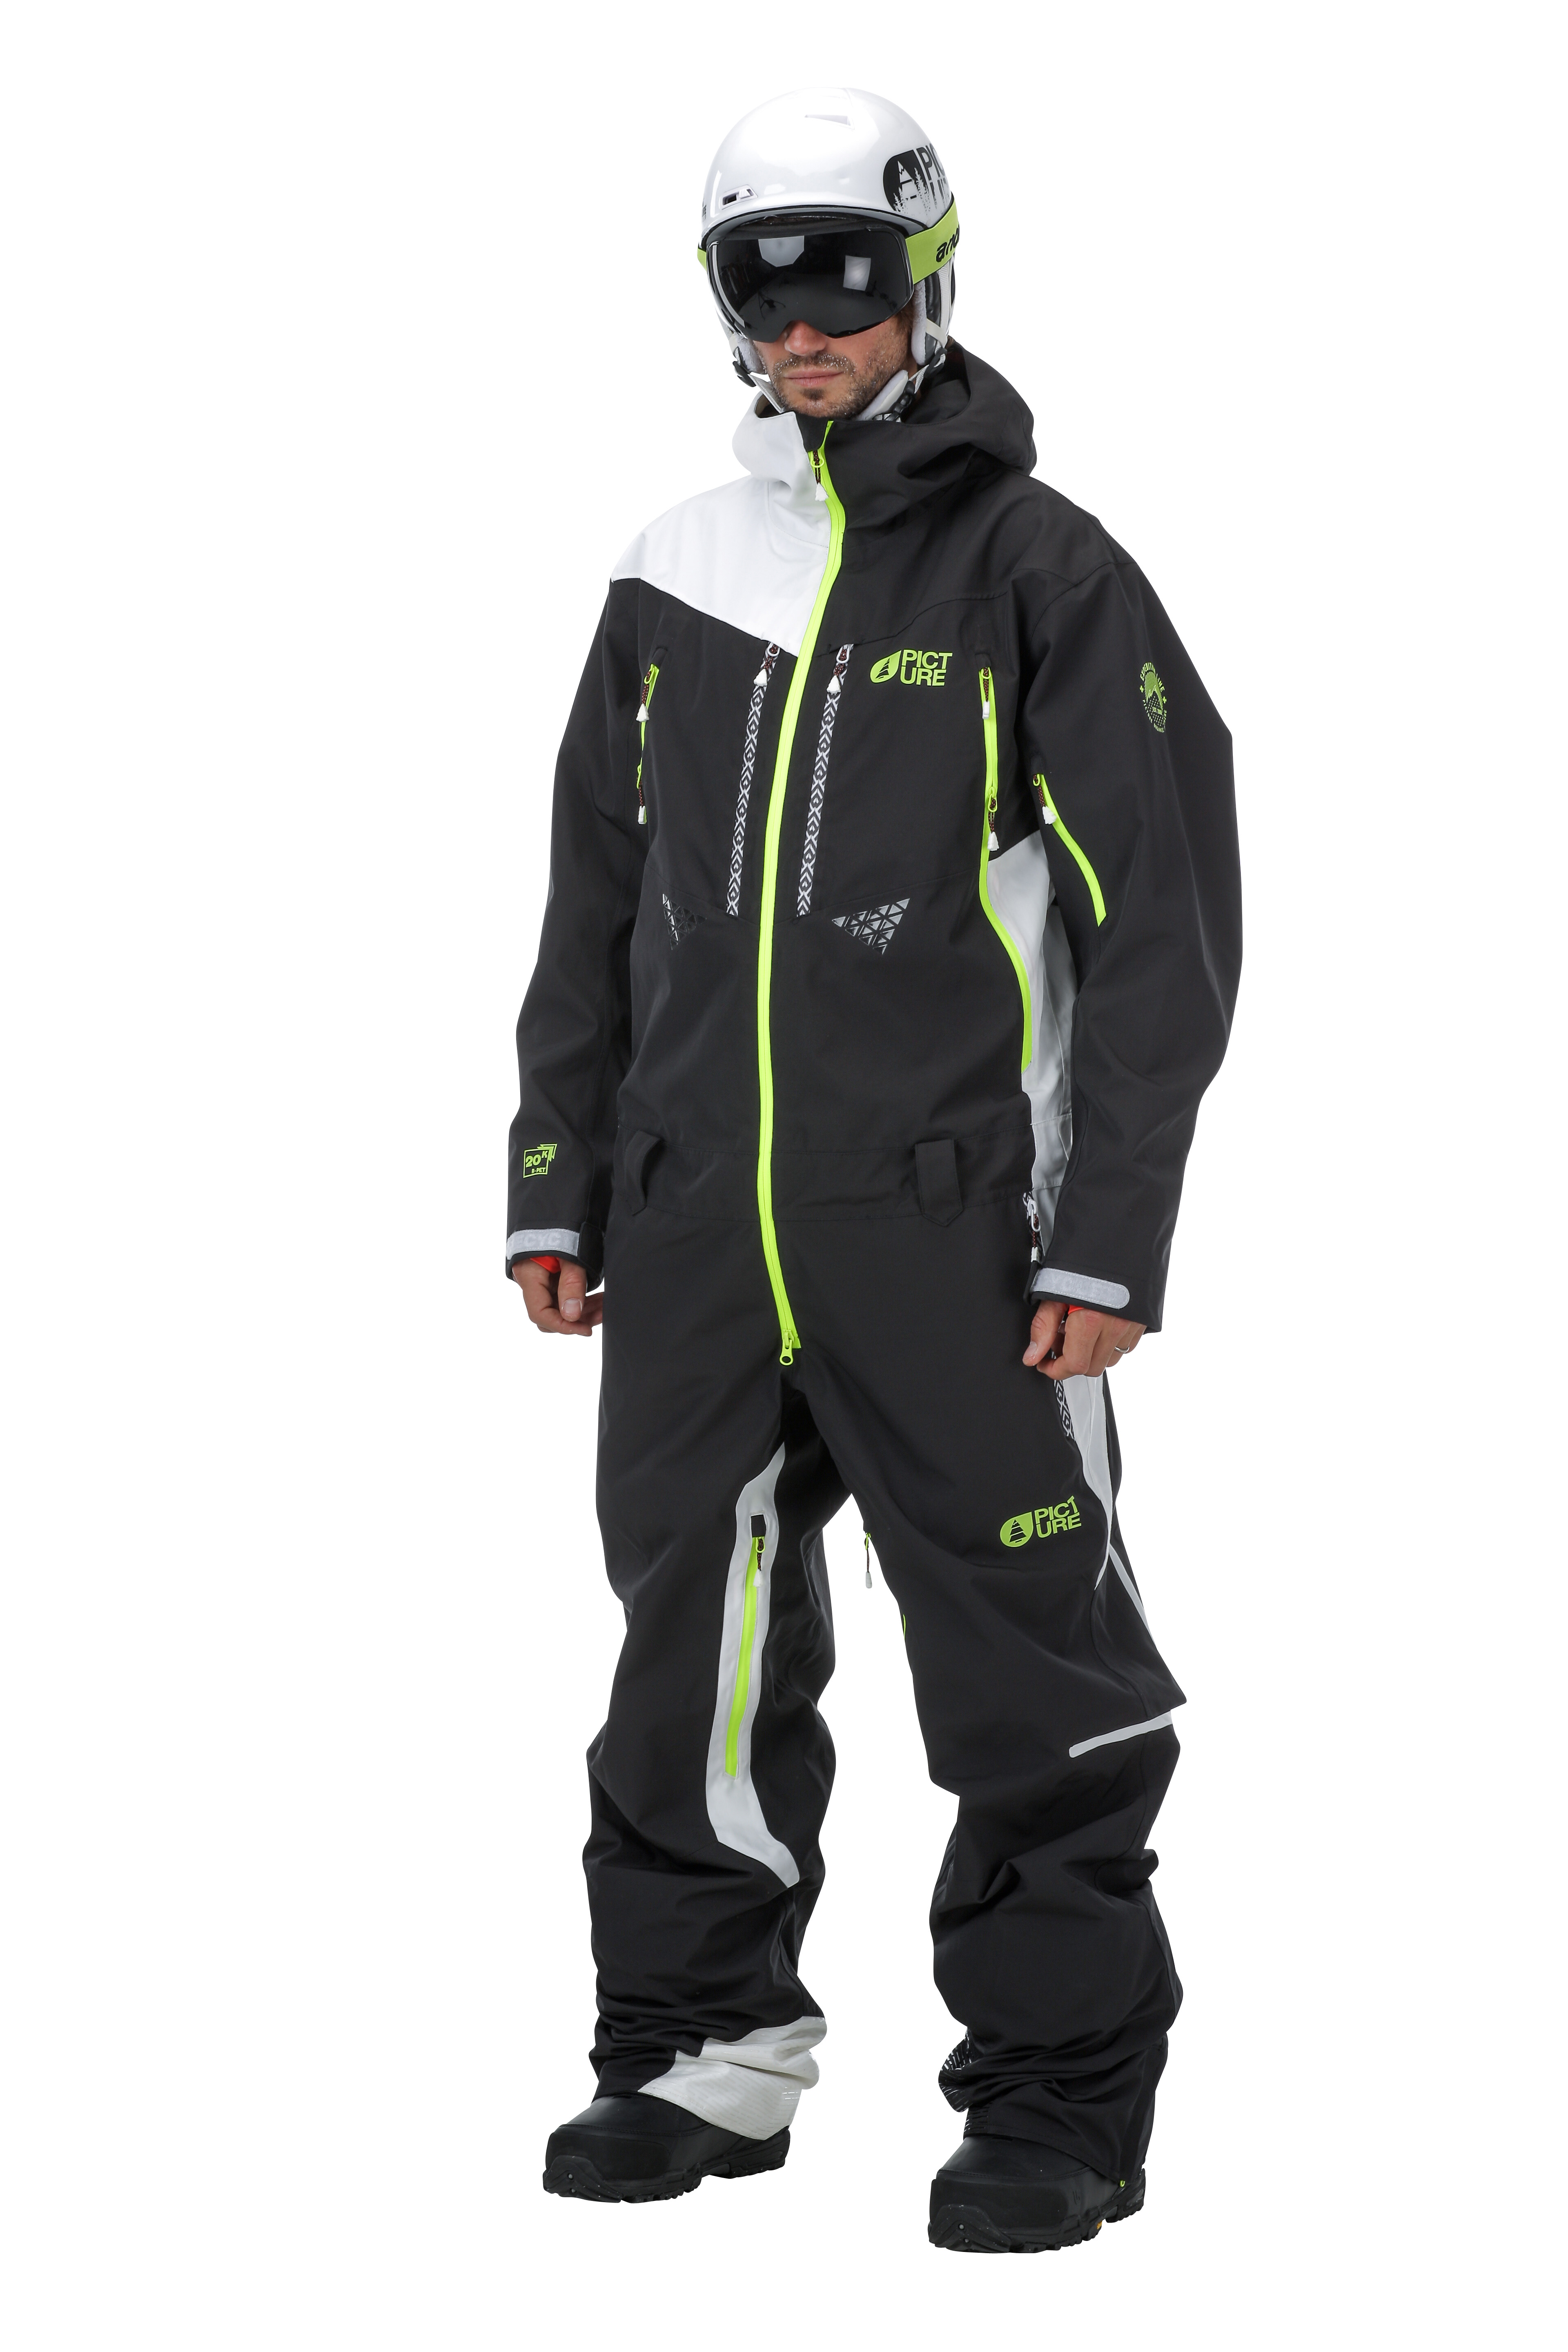 We sell one piece suits for skiing and snowboarding from big brands such as , Burton, Protest Boardwear, Four Square, K2, Nitro, Salomon, Five, Westbeach, Roxy, Dare 2 Be, and many more. We also have a wide range of childrens or junior ski and snowboard suits.